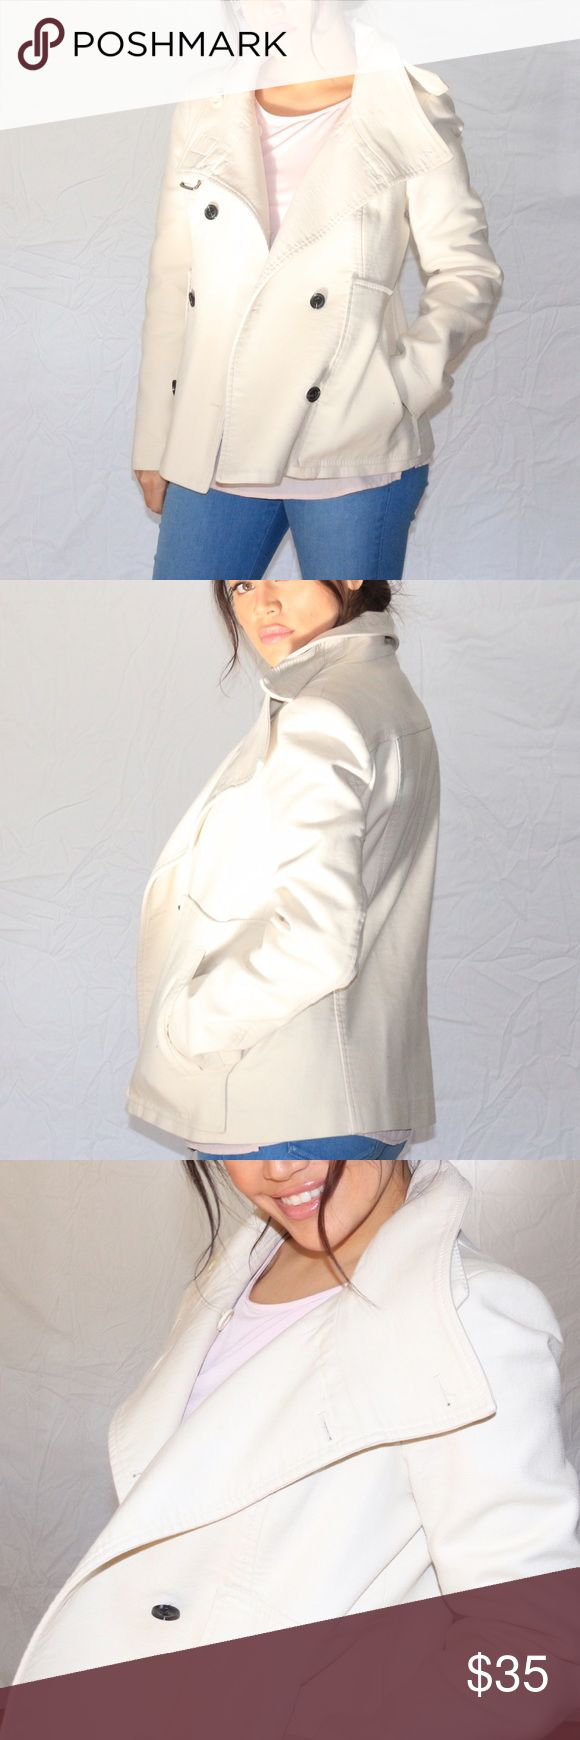 MNG by Mango Off White Coat Perfect condition recently dry-cleaned off white coat Mango Jackets & Coats Trench Coats